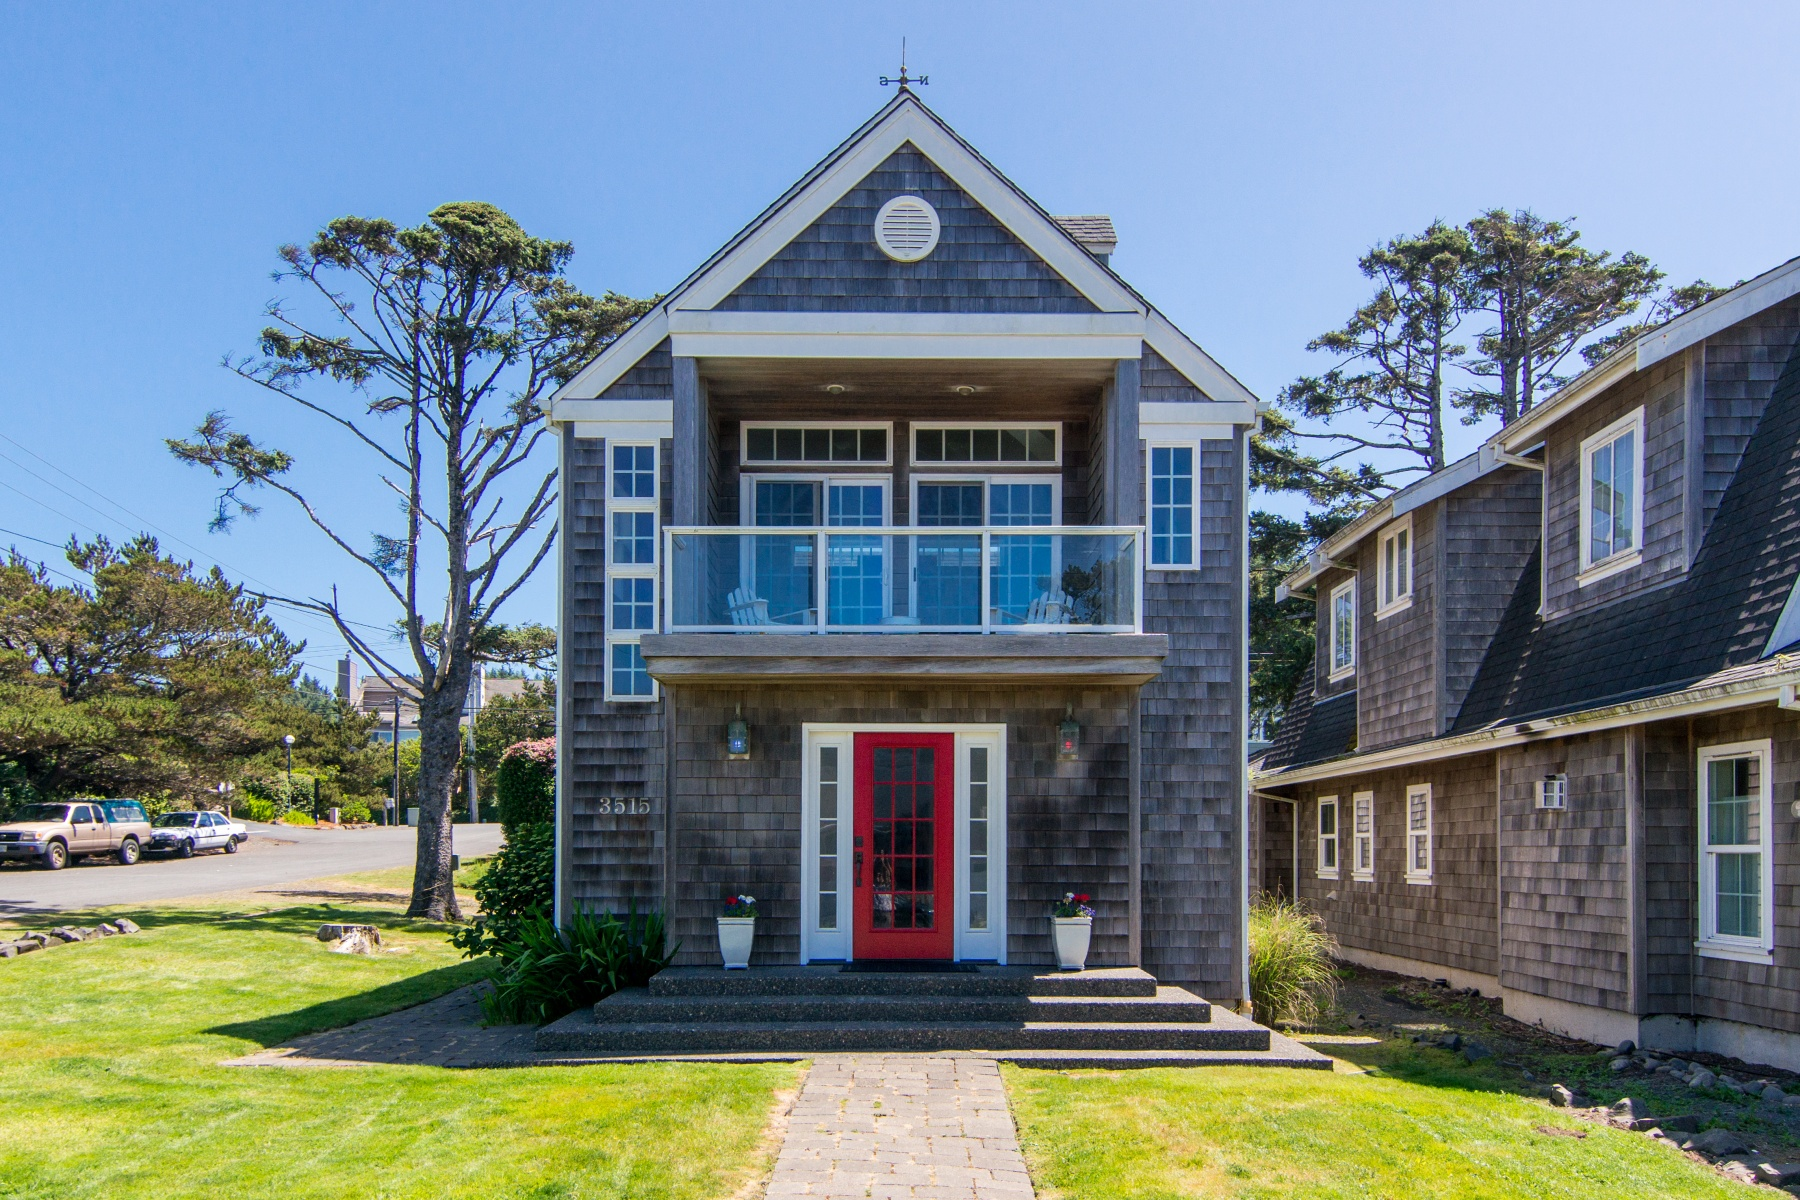 Single Family Home for Sale at 3515 Pacific ST, CANNON BEACH Cannon Beach, Oregon, 97110 United States